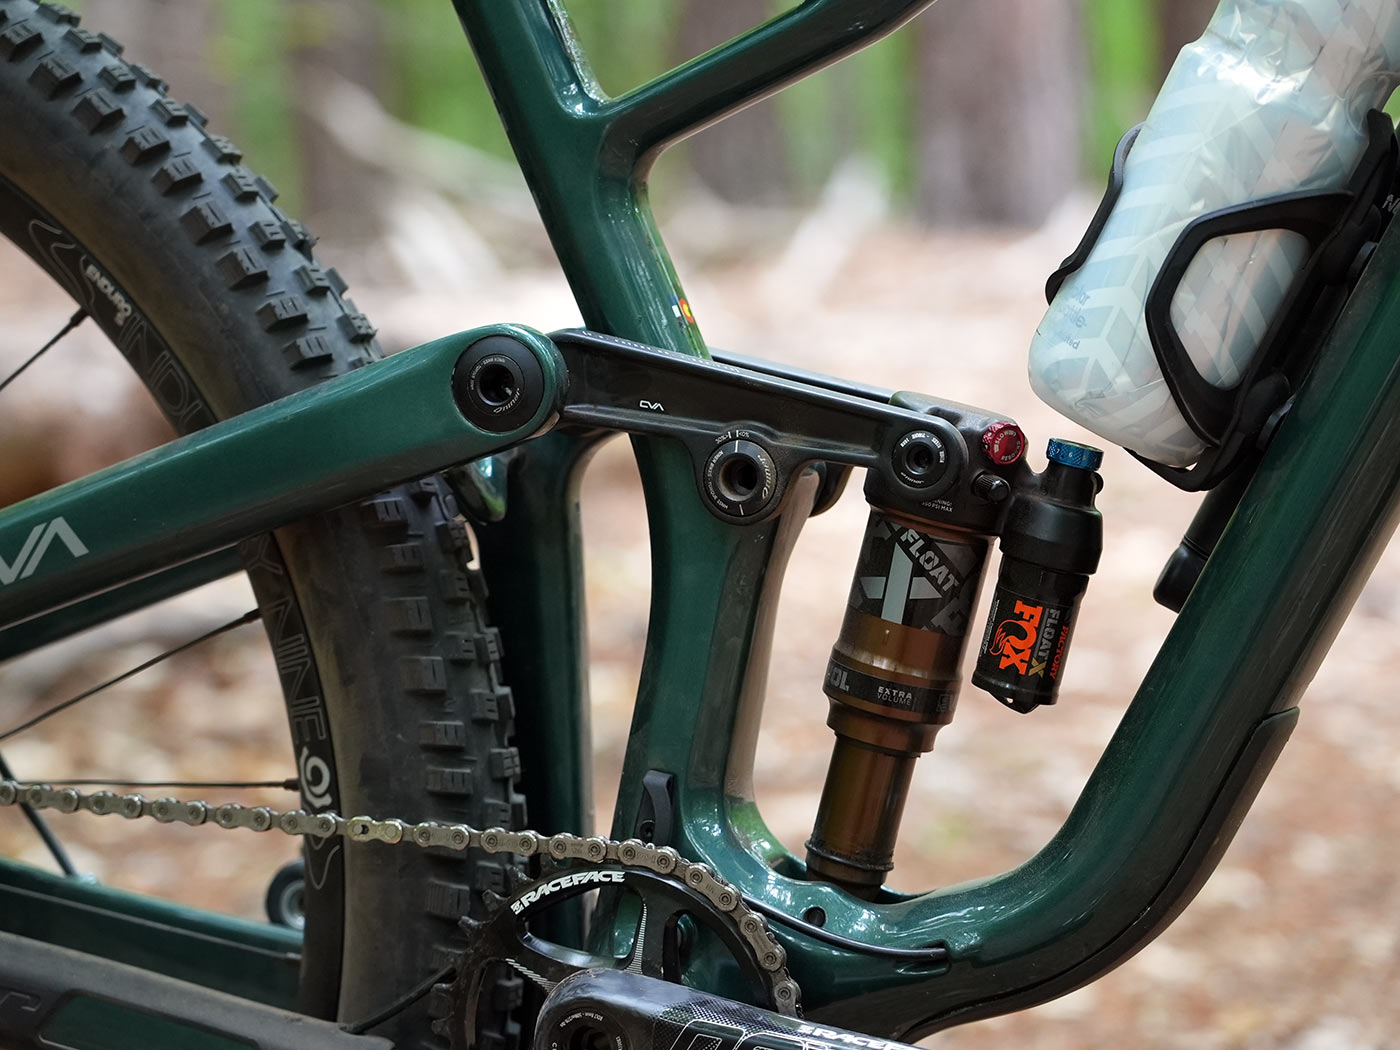 tech details and closeup suspension linkage photos of the 2022 niner jet 9 rdo trail mountain bike